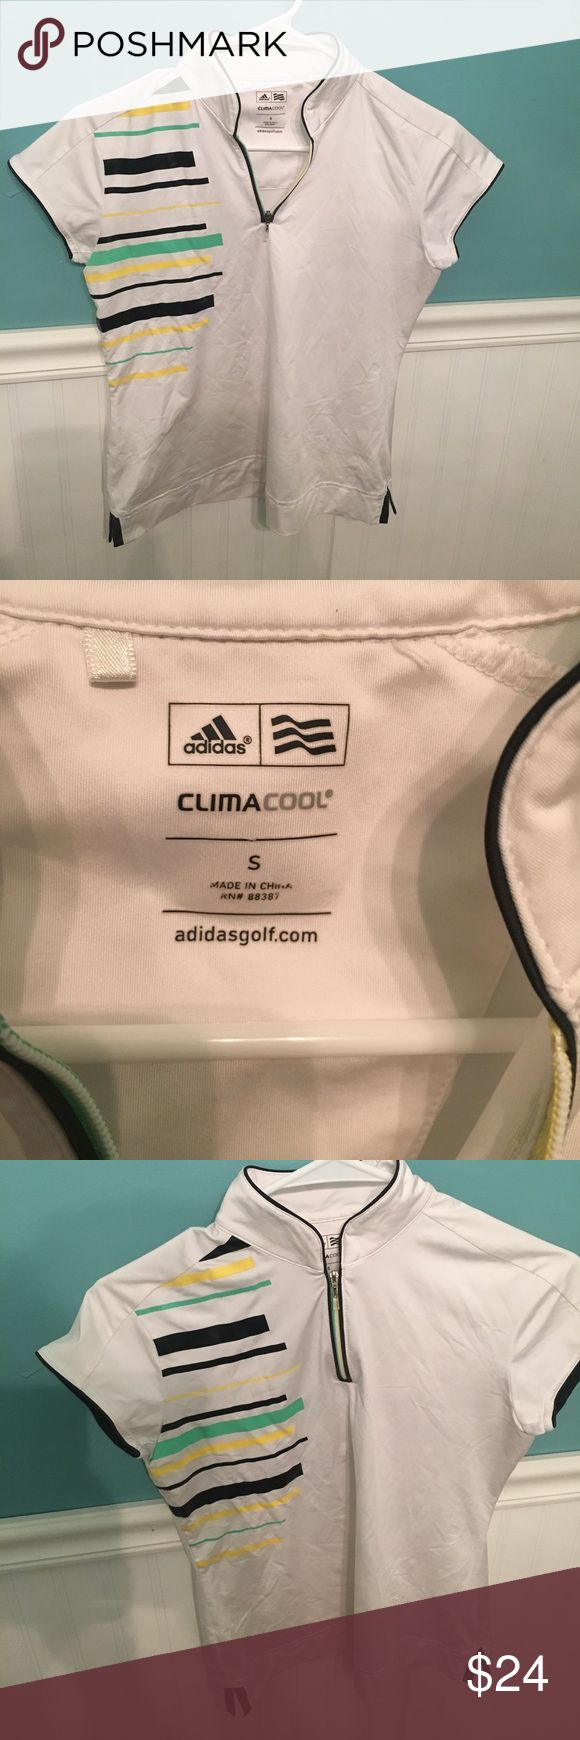 Adidas Clima Cool Golf Shirt White Adidas Clima Cool golf shirt. Size small. Zip front with yellow, green, and black shoulder stripes. In excellent condition. Adidas ClimaCool Tops